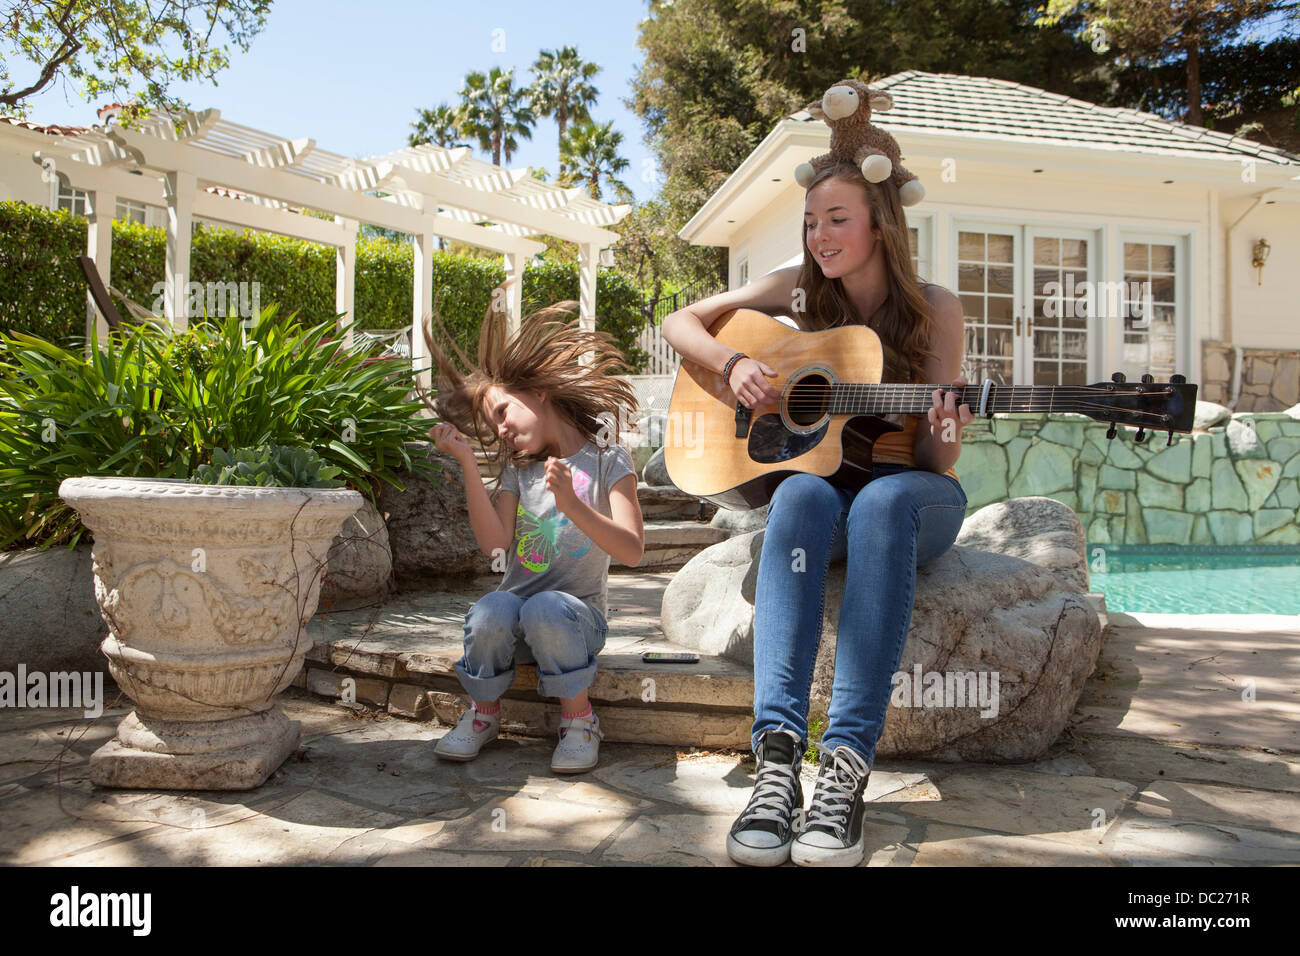 Girl with older sister playing guitar - Stock Image